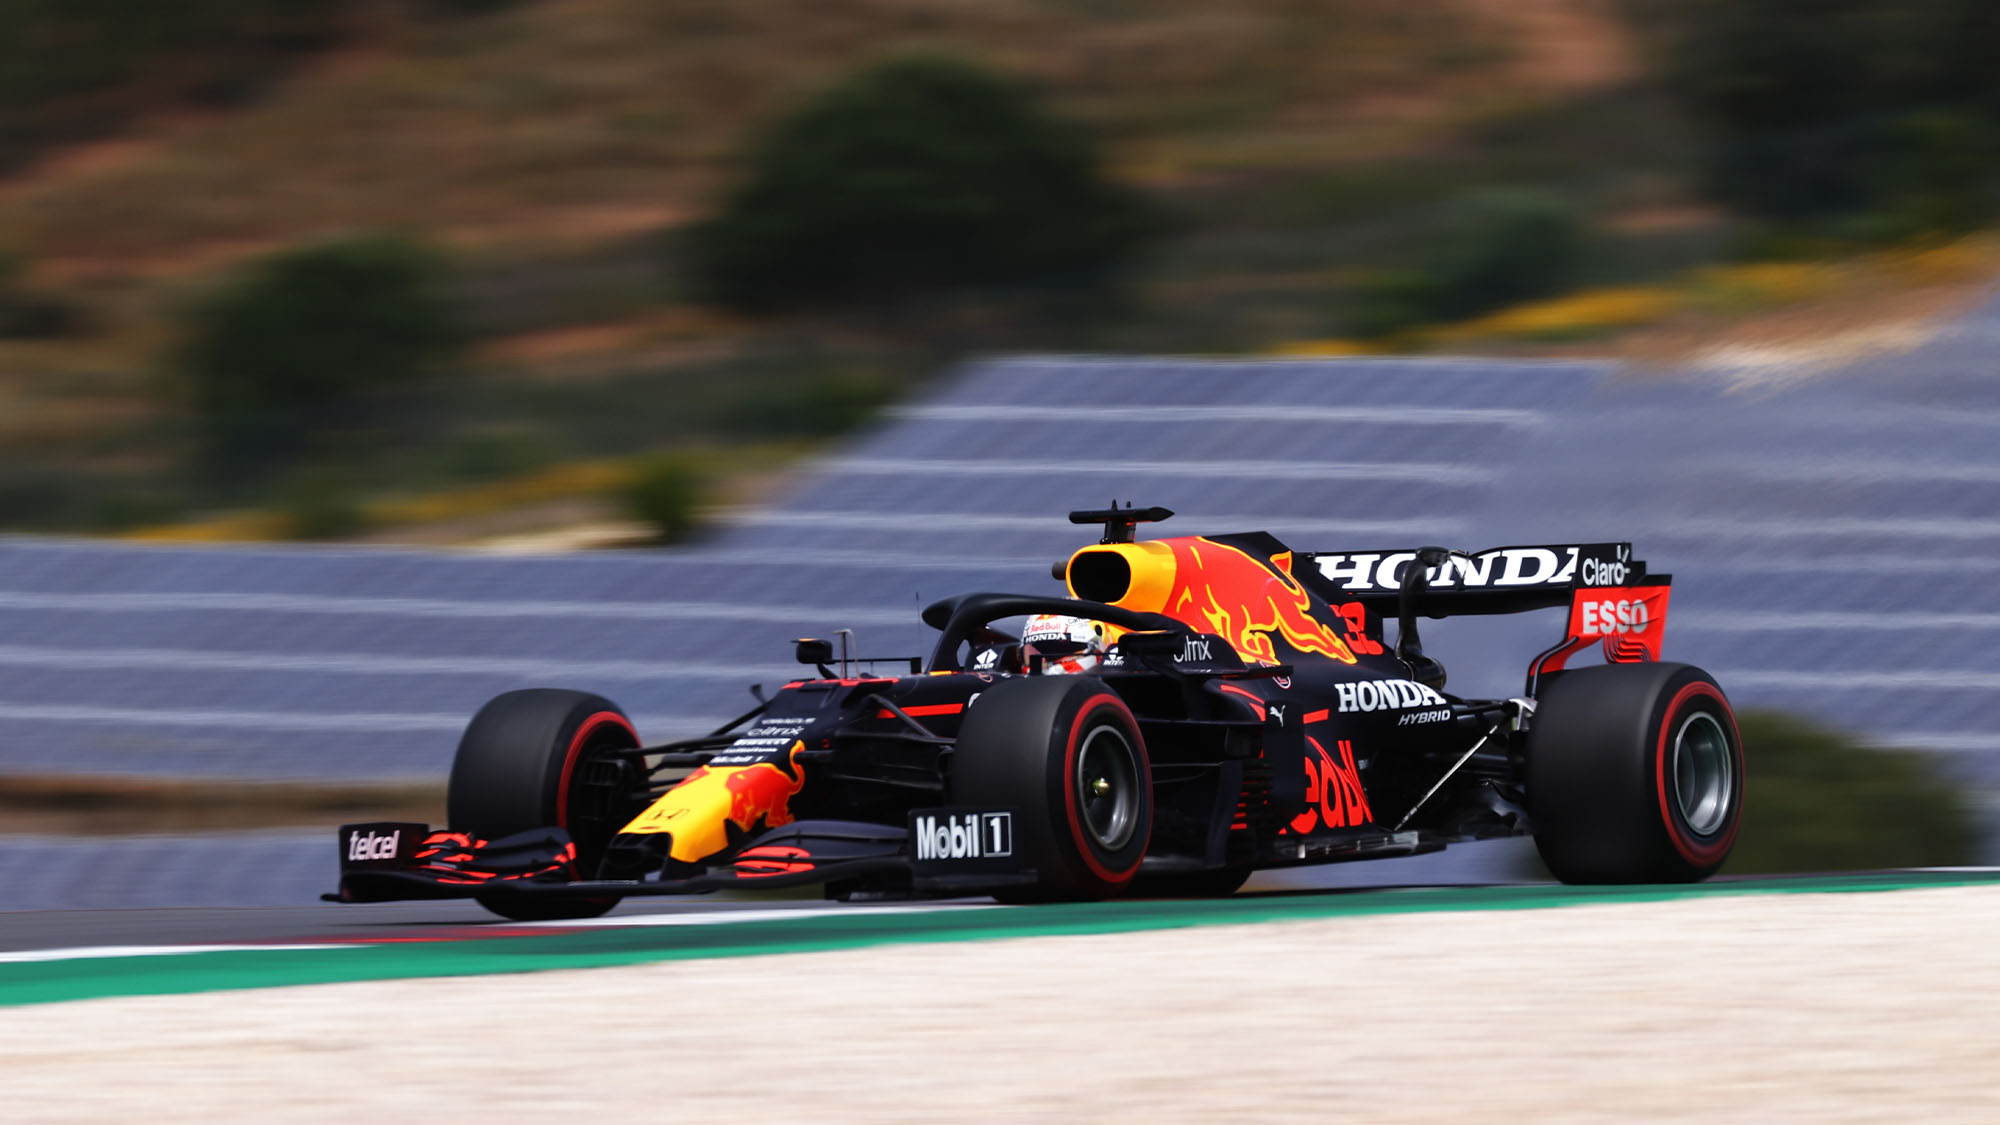 2021 Portuguese GP practice round-up: Verstappen takes control in FP3